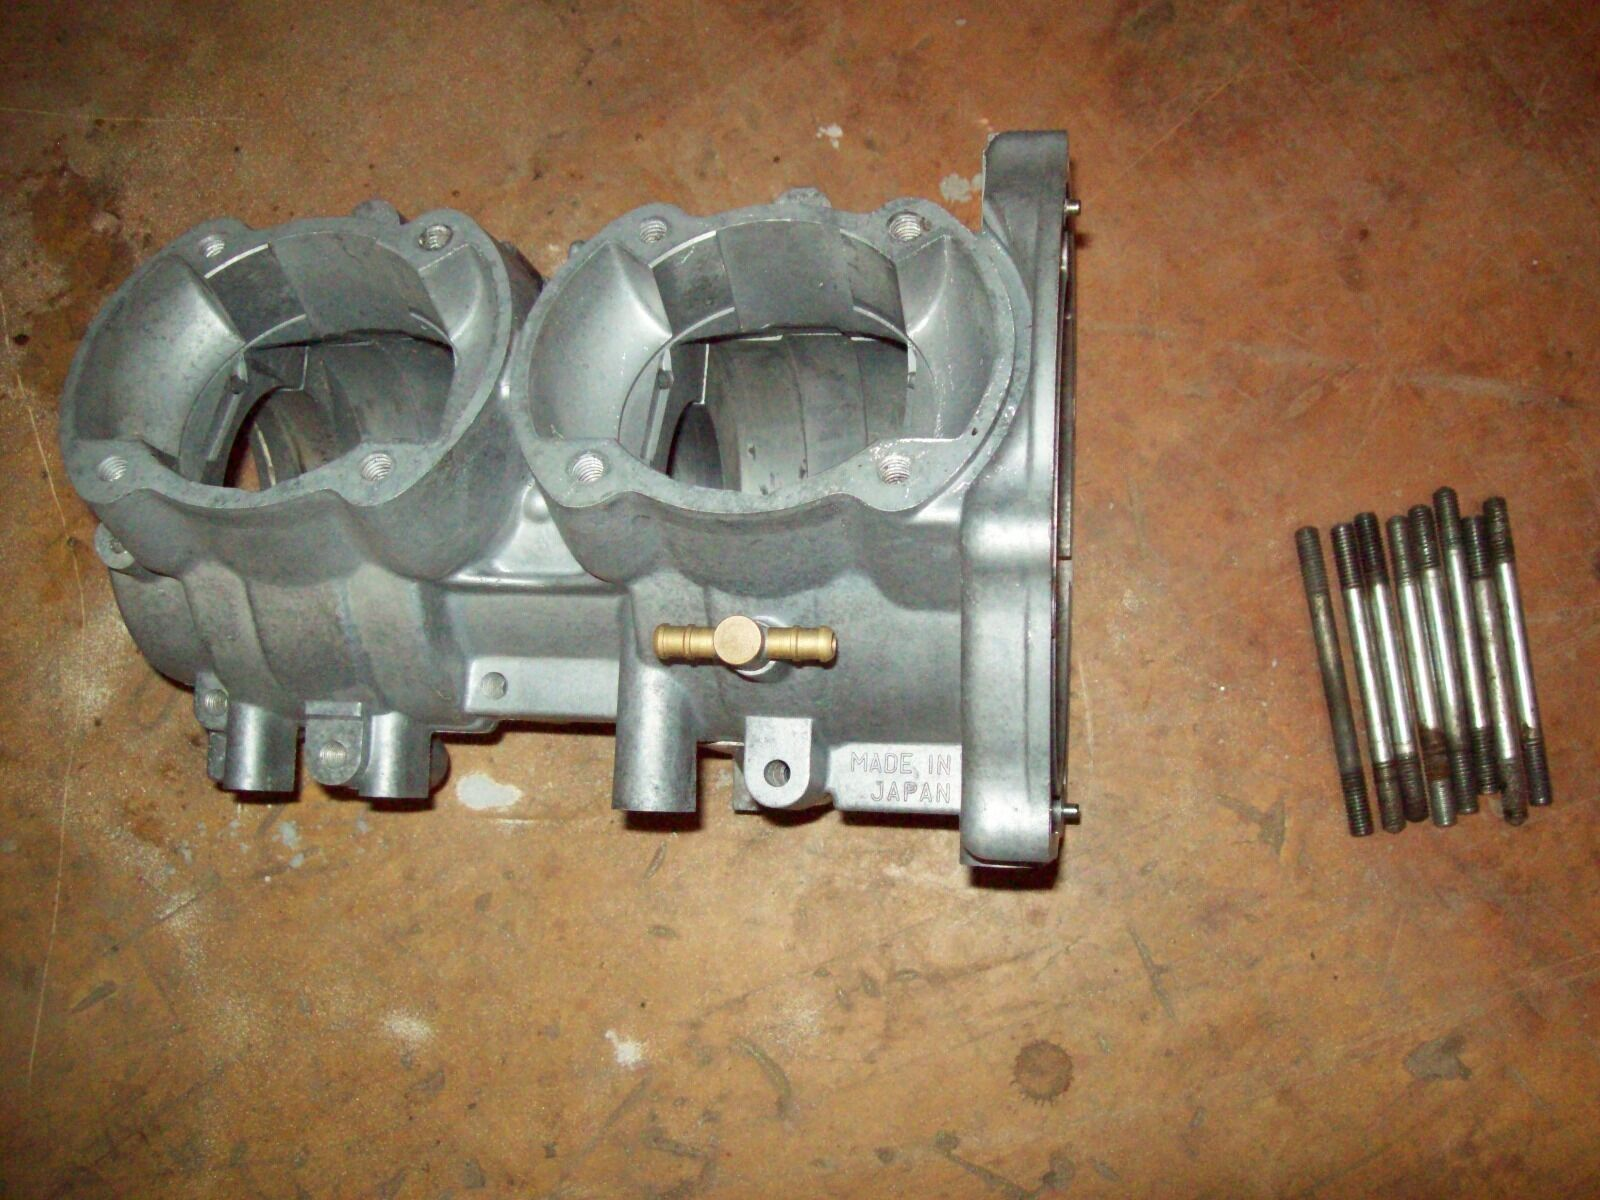 Vintage Yamaha Snowmobile Crankcase Restored 1971 SS  433 SR 433 GP 396 SW 396  the classic style